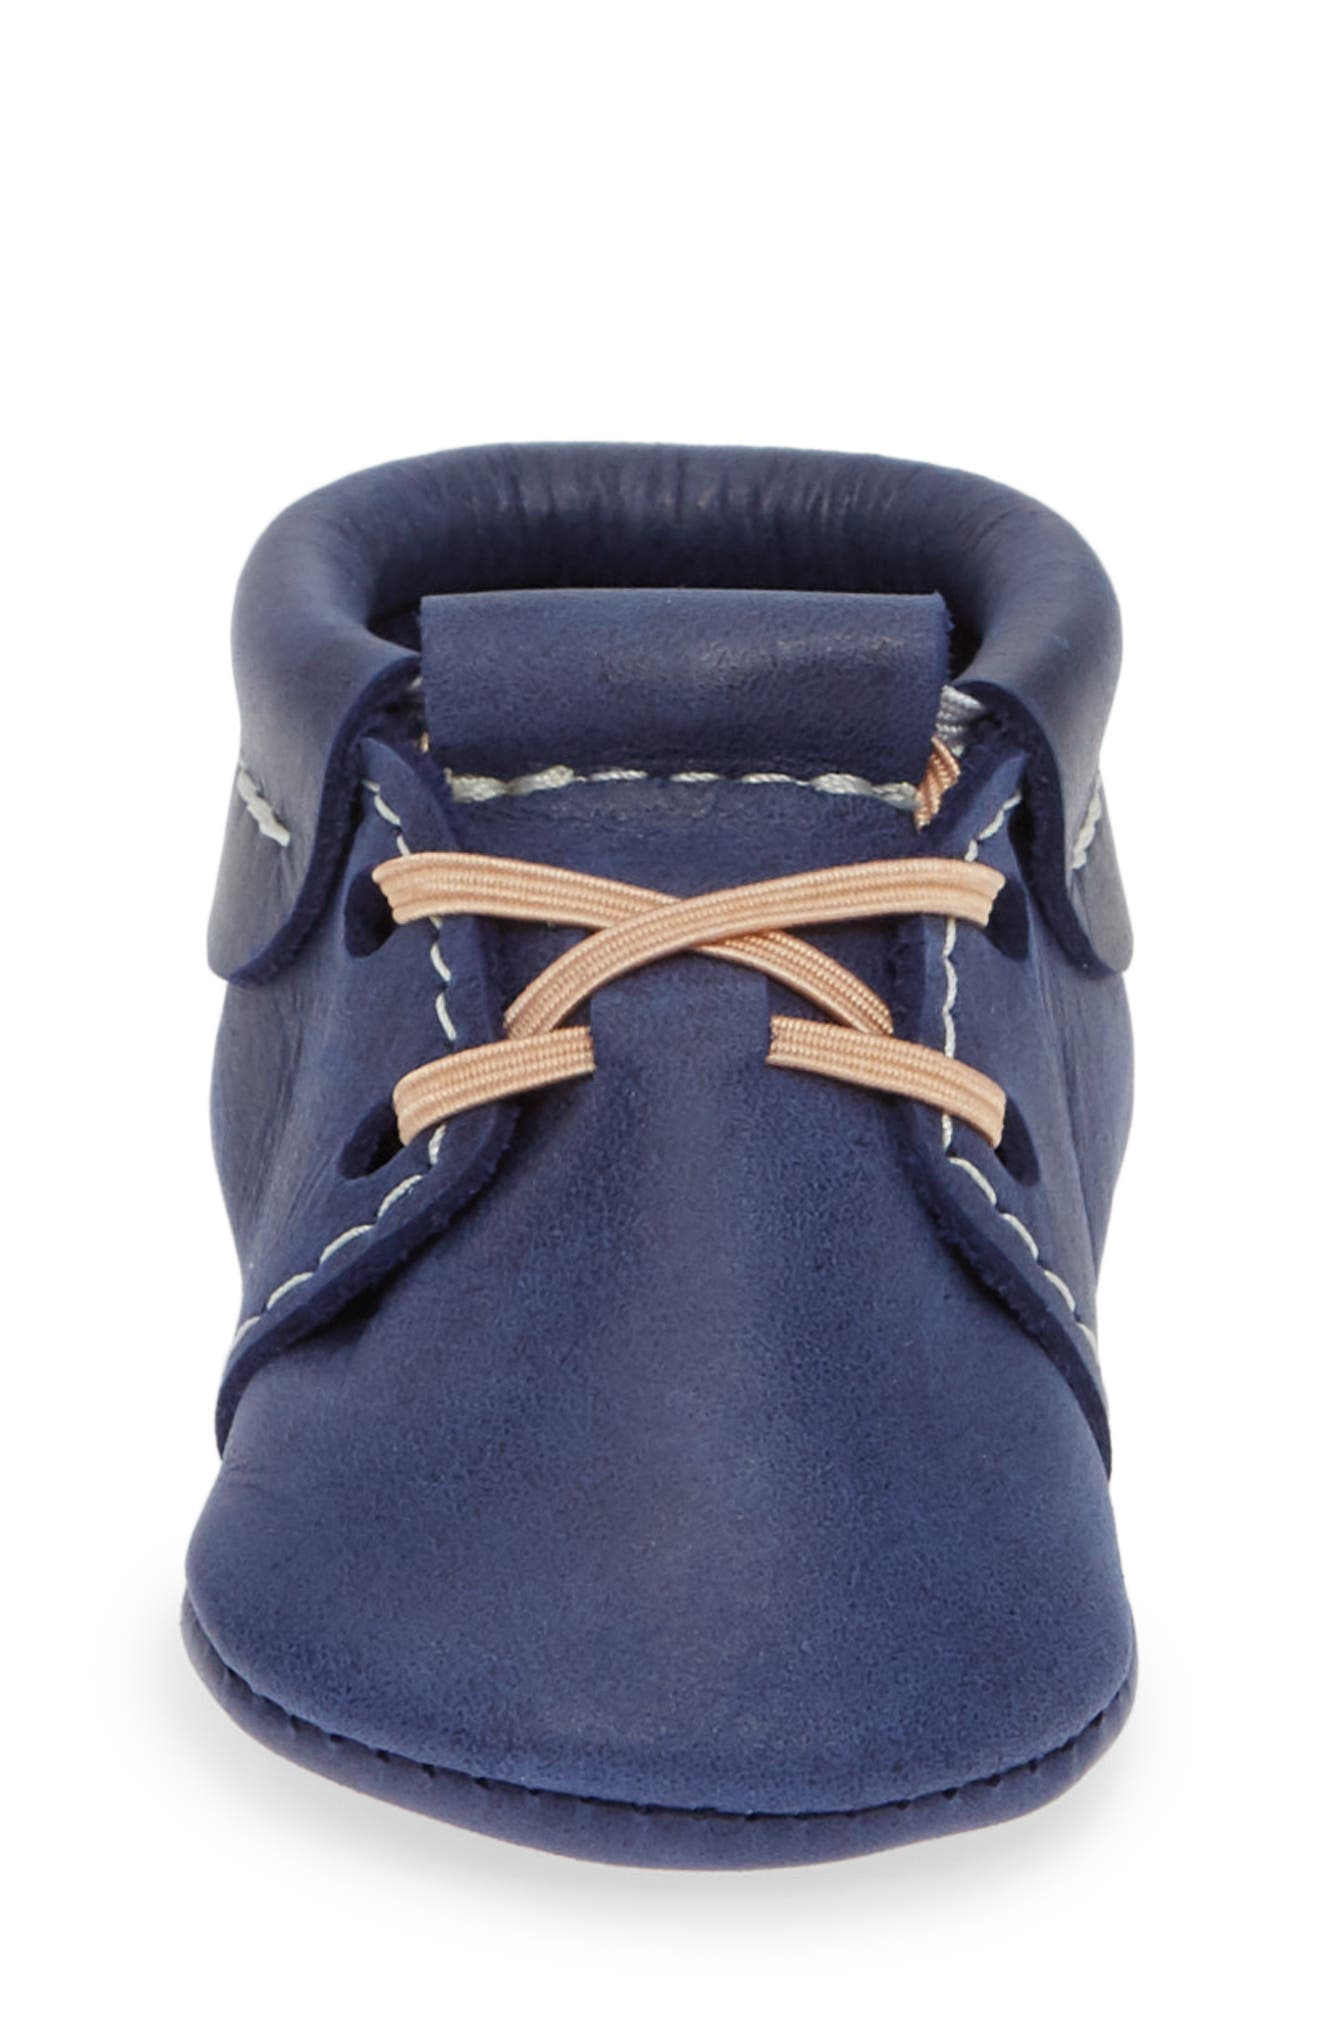 City Leather Moccasin,                             Alternate thumbnail 4, color,                             410